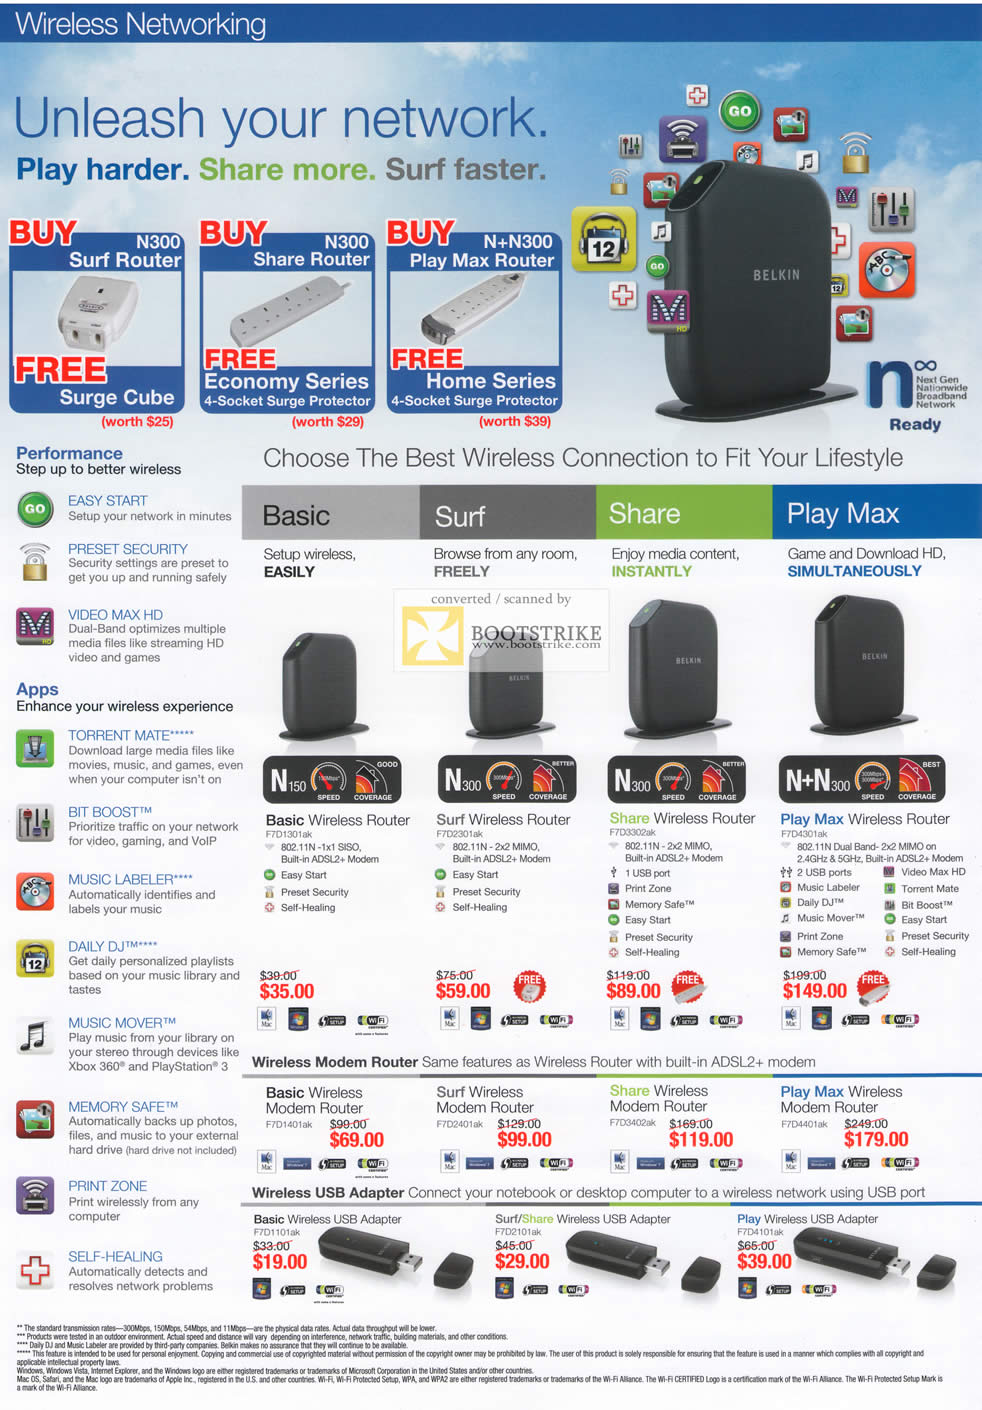 IT Show 2011 price list image brochure of Ban Leong Belkin Surf Router N300 Share Basic Surf Share Play Max Modem Wireless USB Adapter